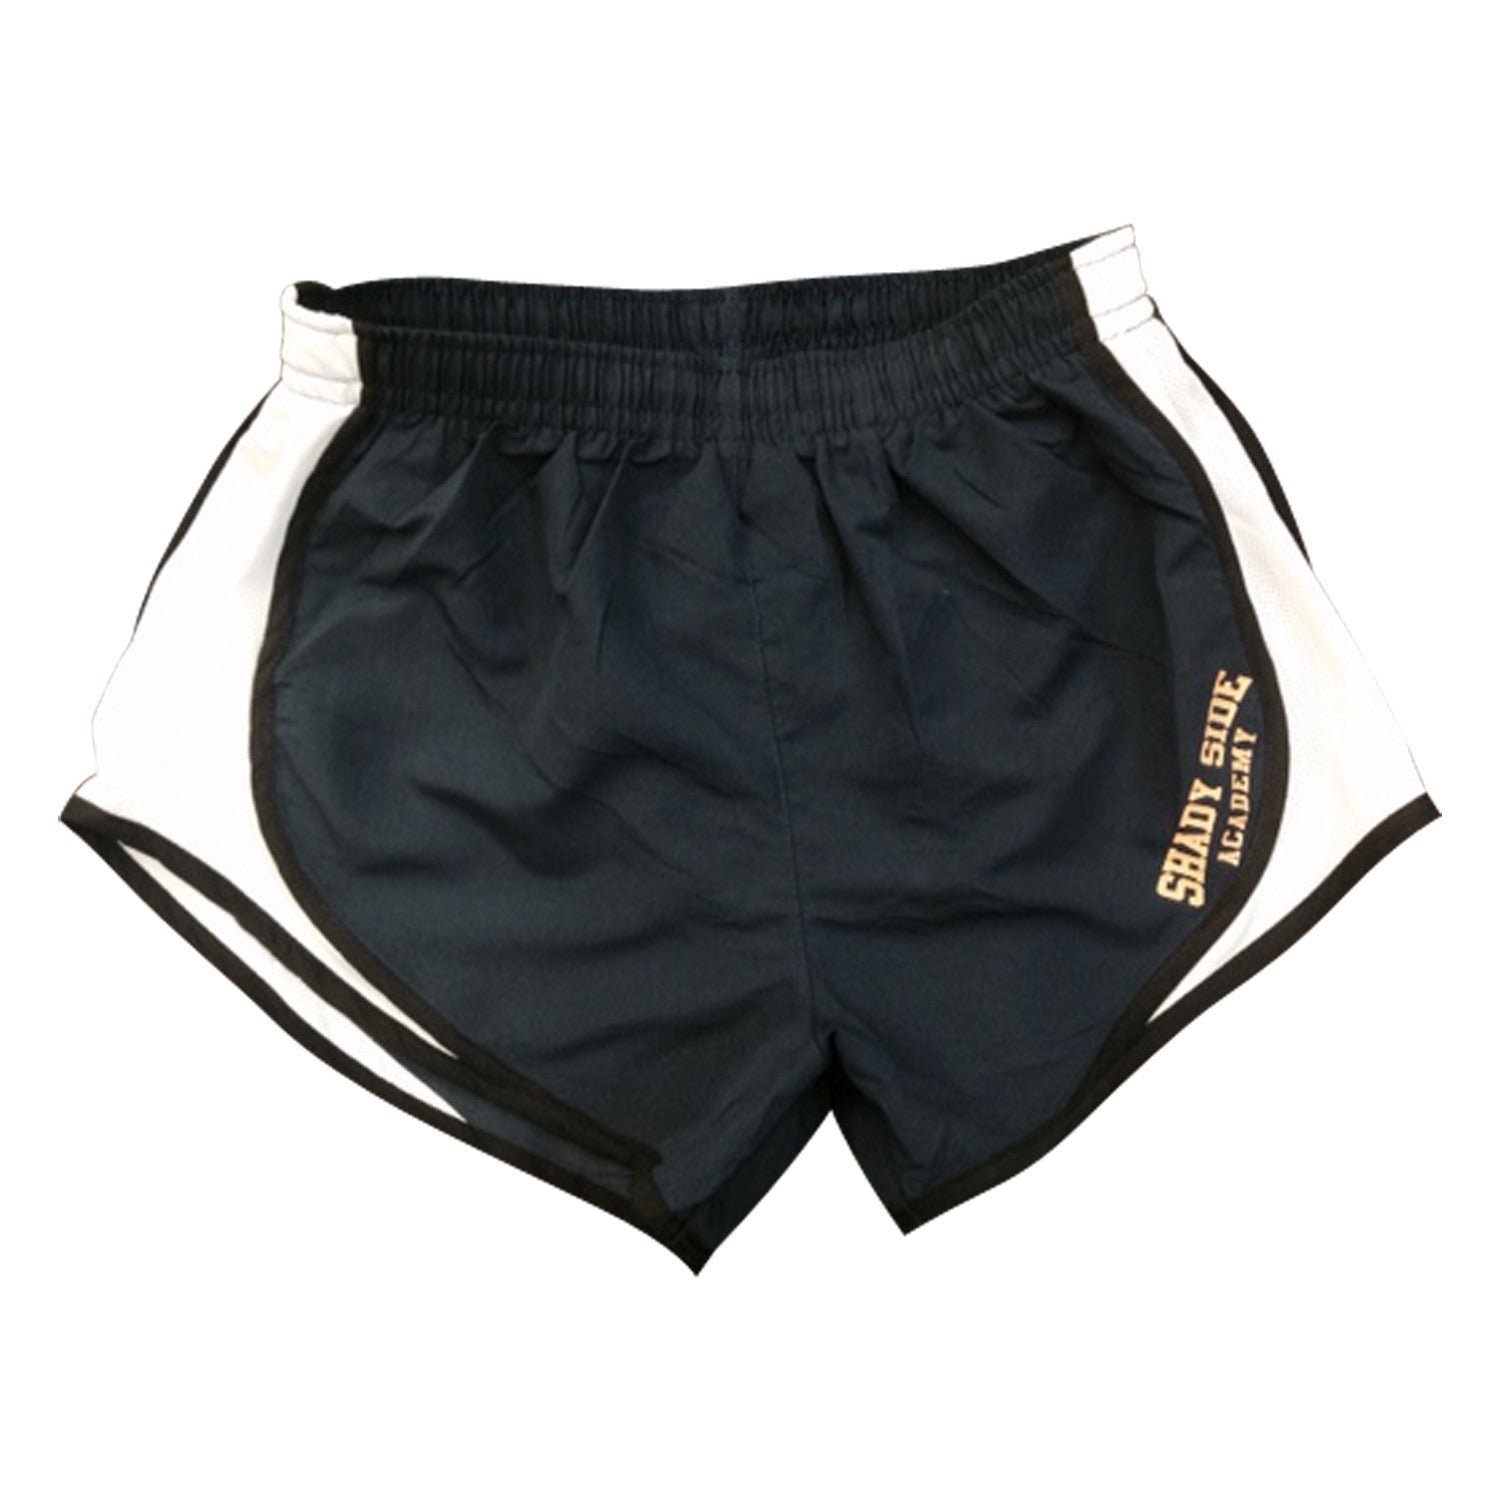 Running Shorts, Women's